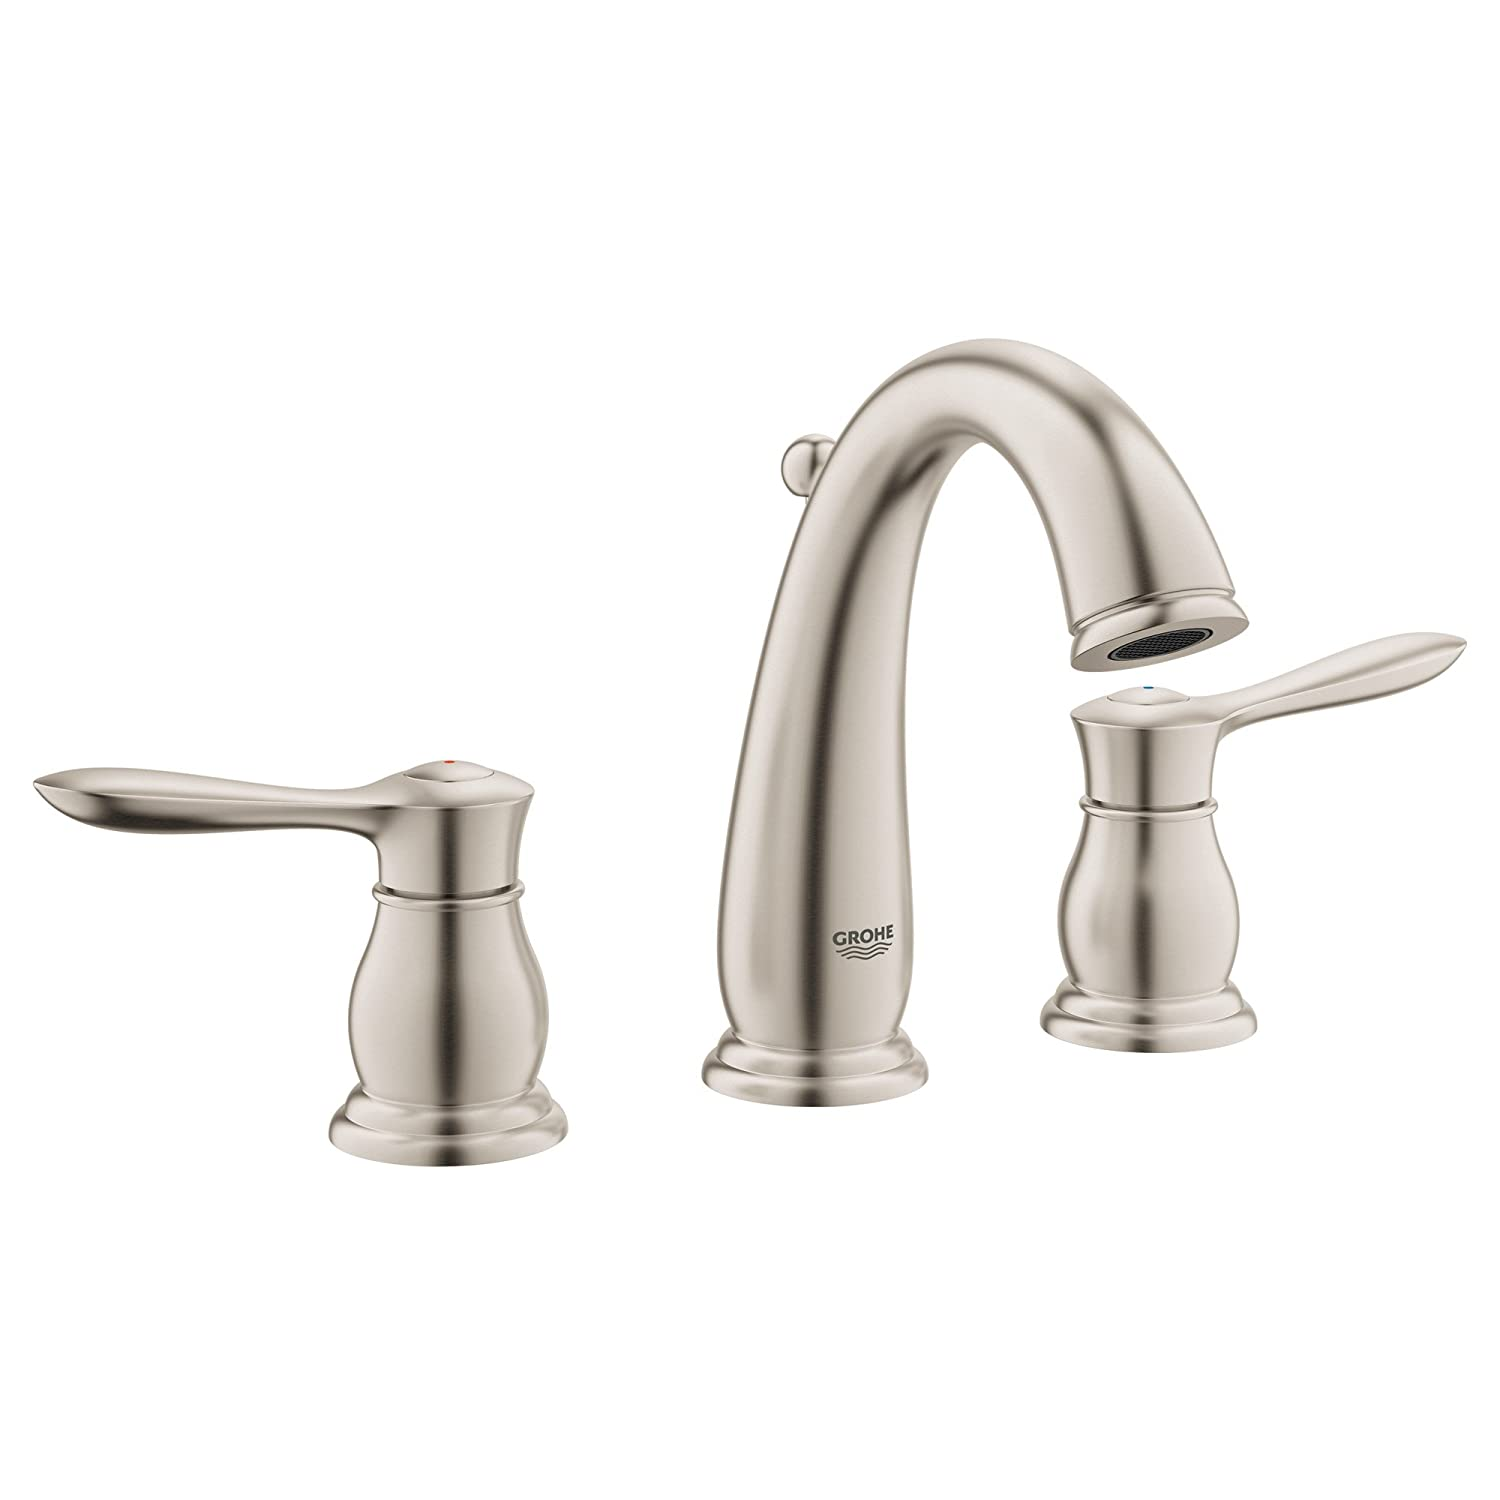 p faucets spotshield single in sp handle nickel delta polished brushed rila faucet bathroom centerset sink